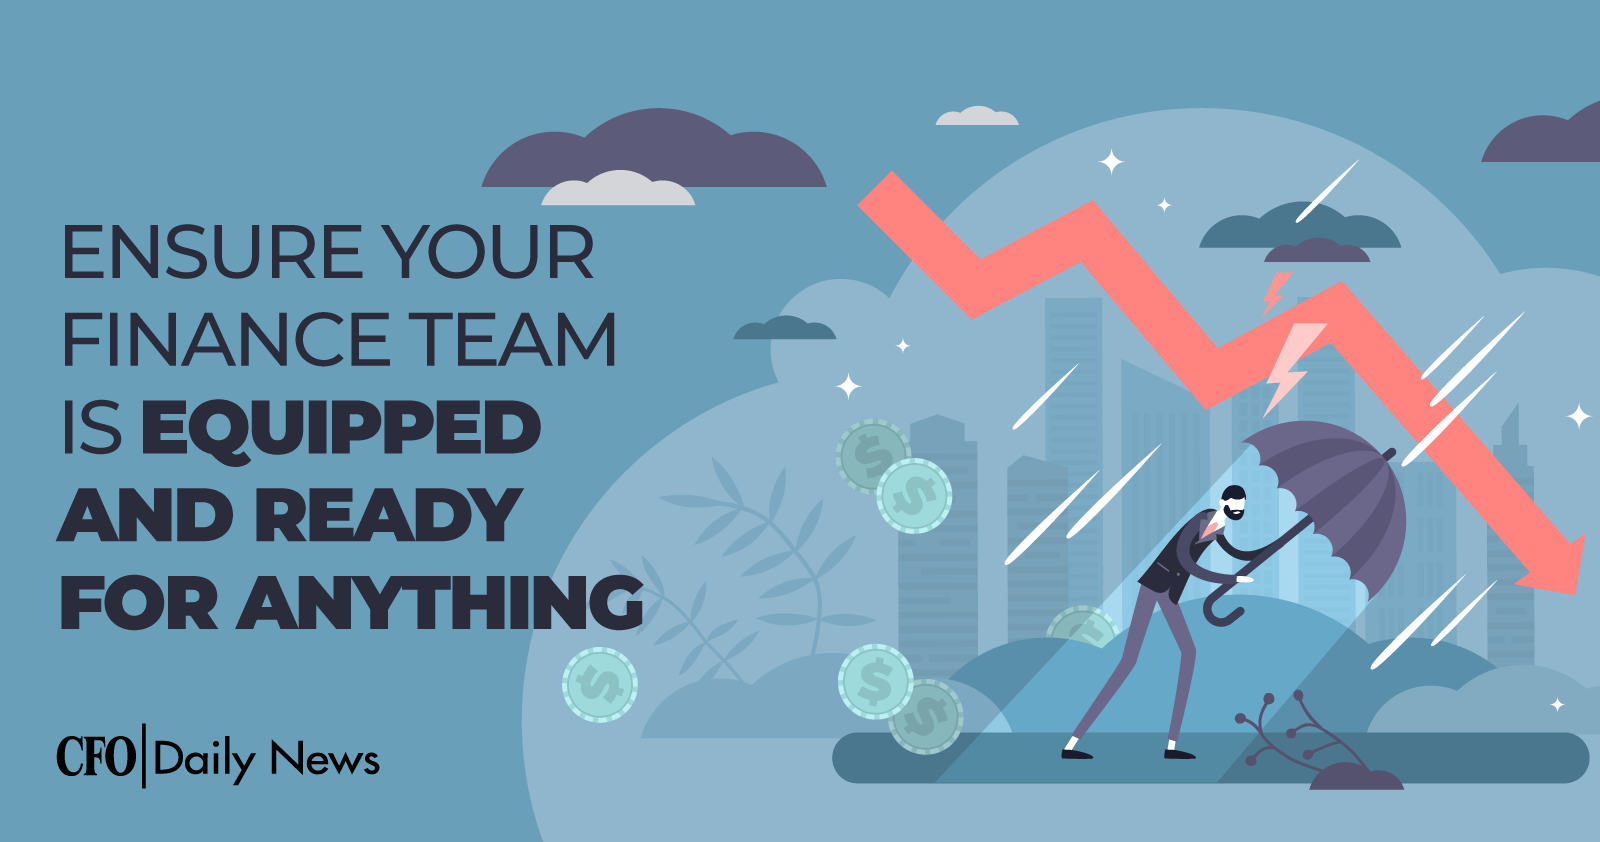 ensure your finance team is equipped and ready for anything